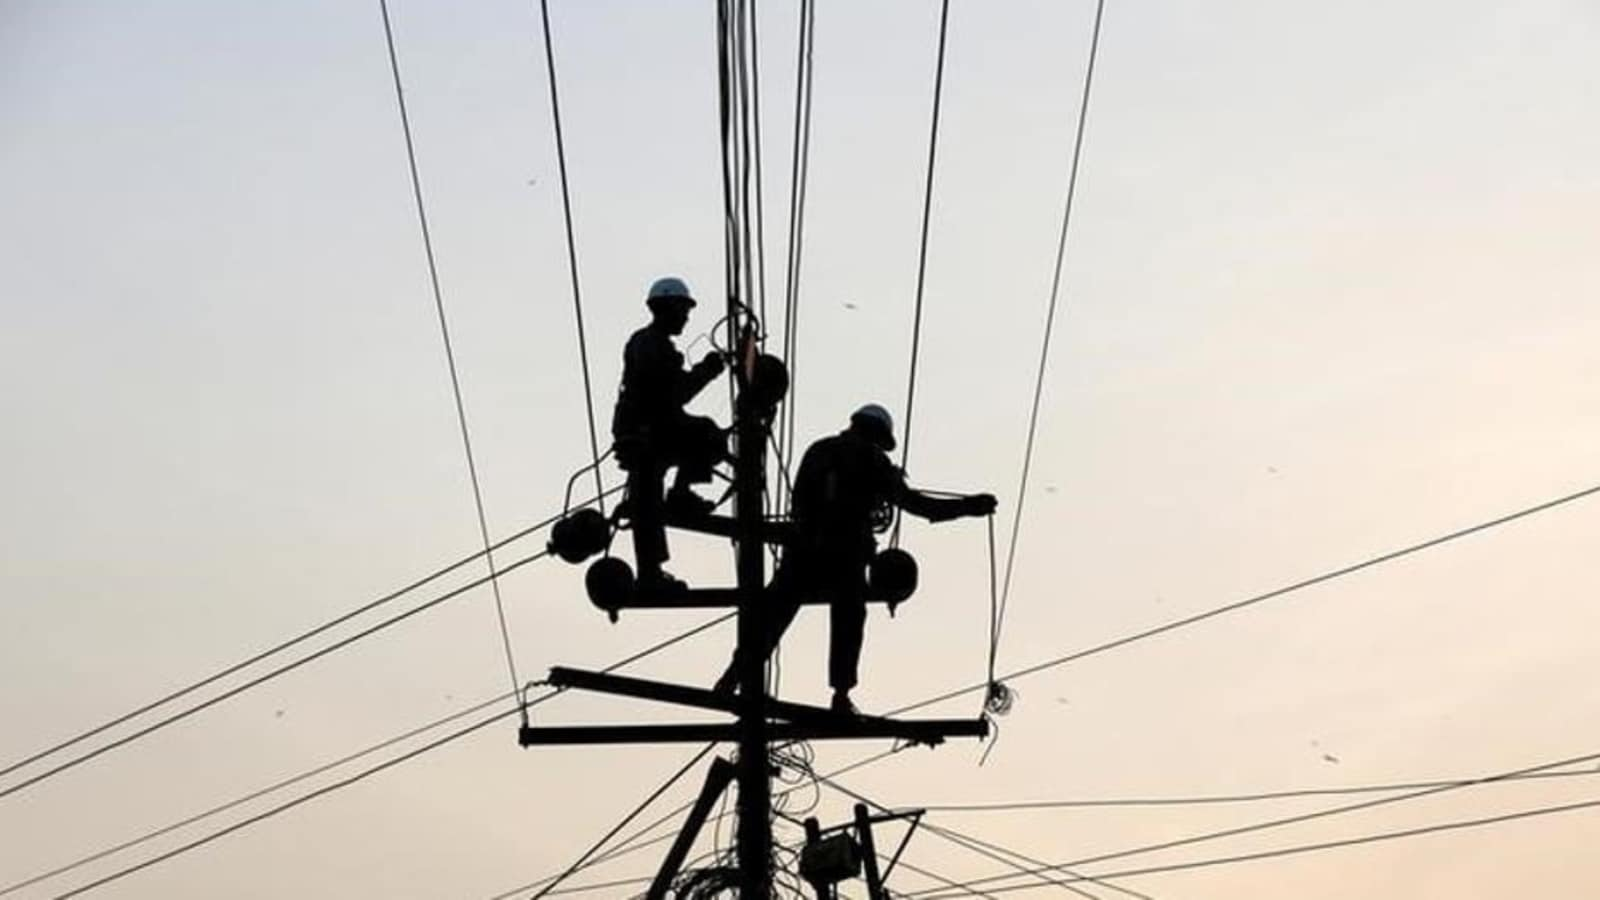 Bill Allowing Change of Power Connections Like Telecom in Queue in Parliament